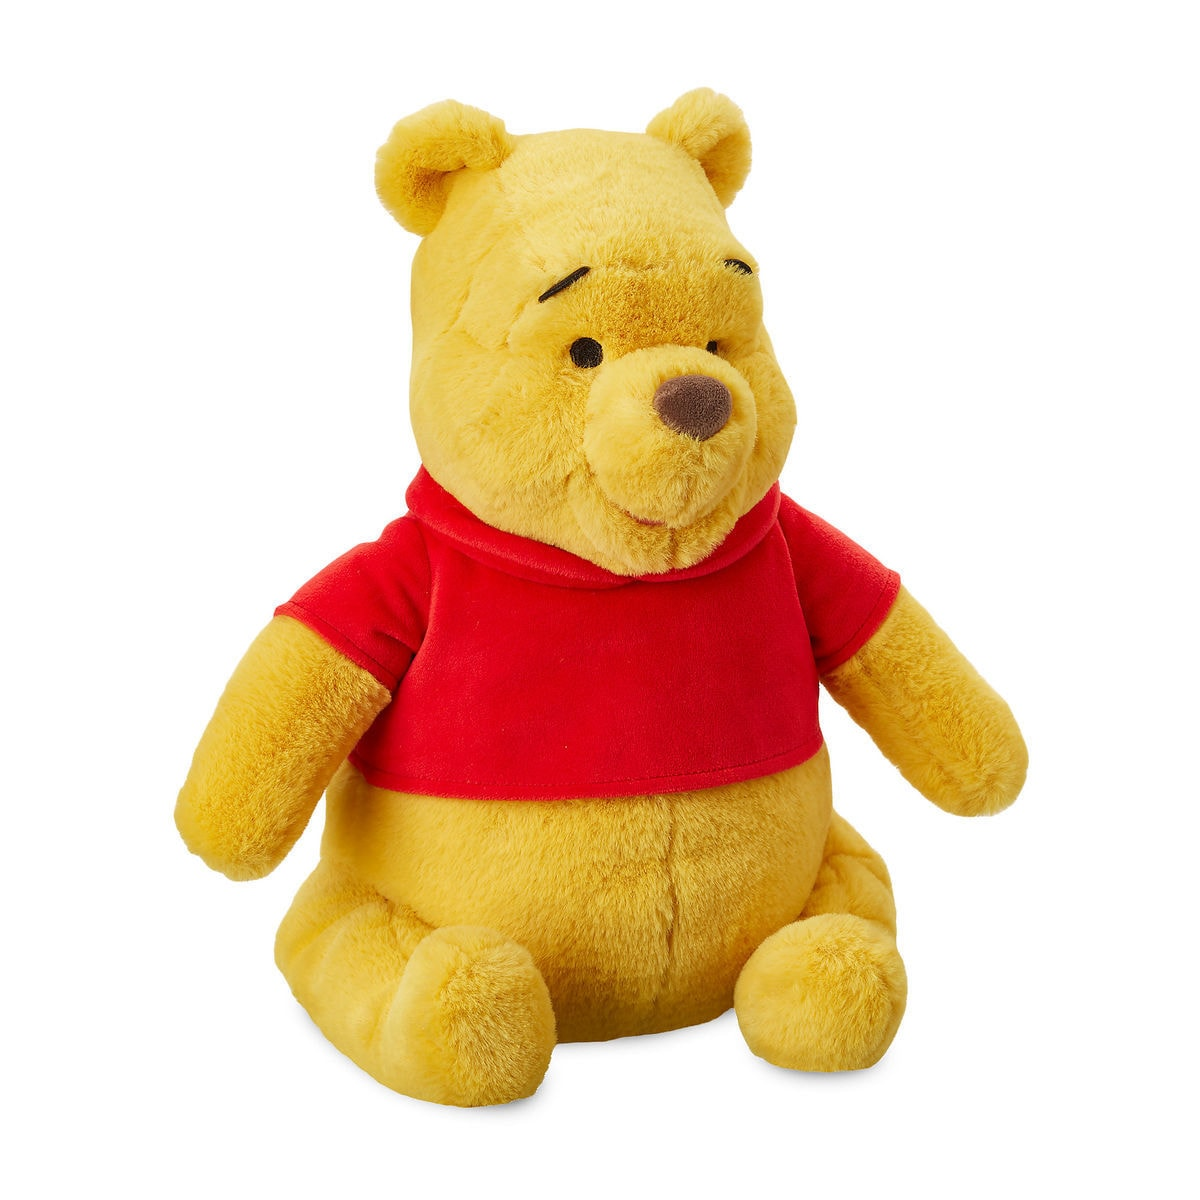 03e593ecf2bb Disney Pooh Plush -NOW with personalizing